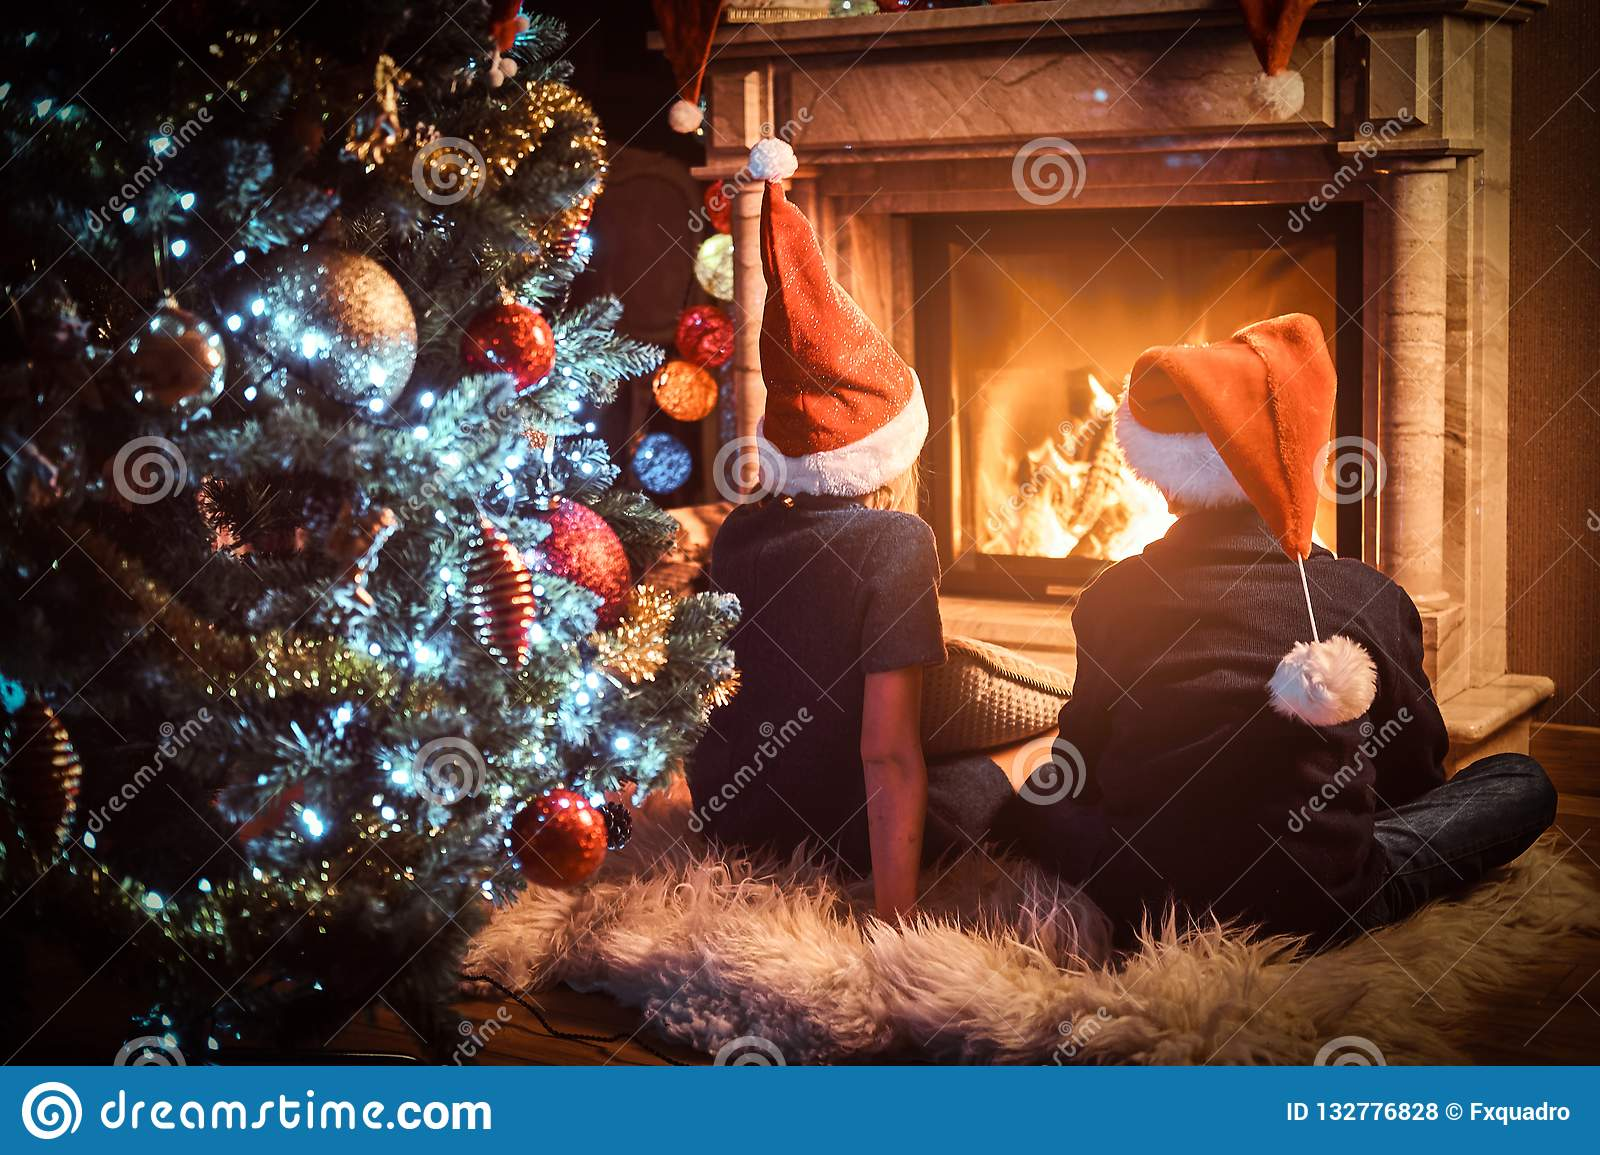 Back view, brother and sister wearing Santa`s hats warming next to a fireplace in a living room decorated for Christmas.